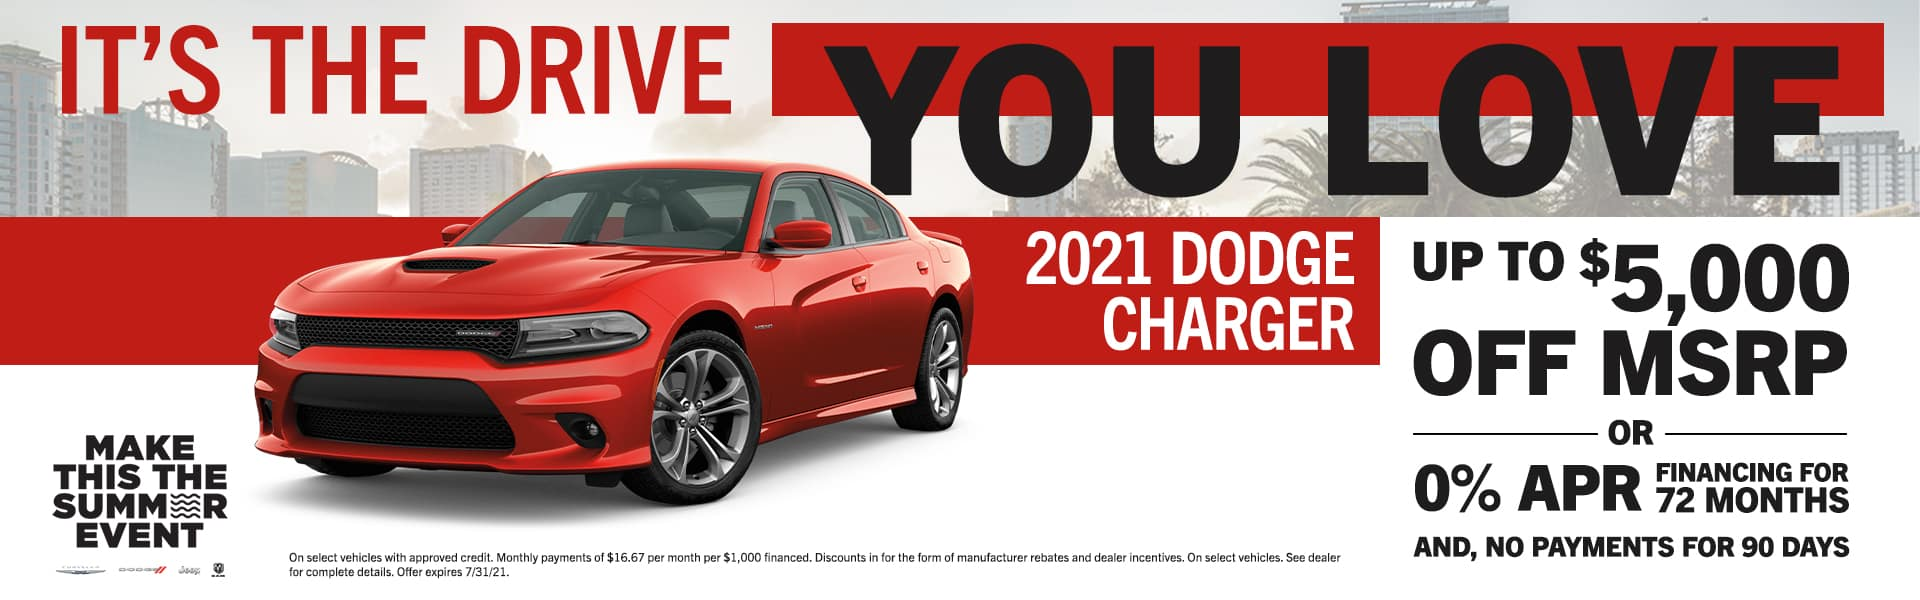 206-0721-CFC1147_July_Dodge-Charger